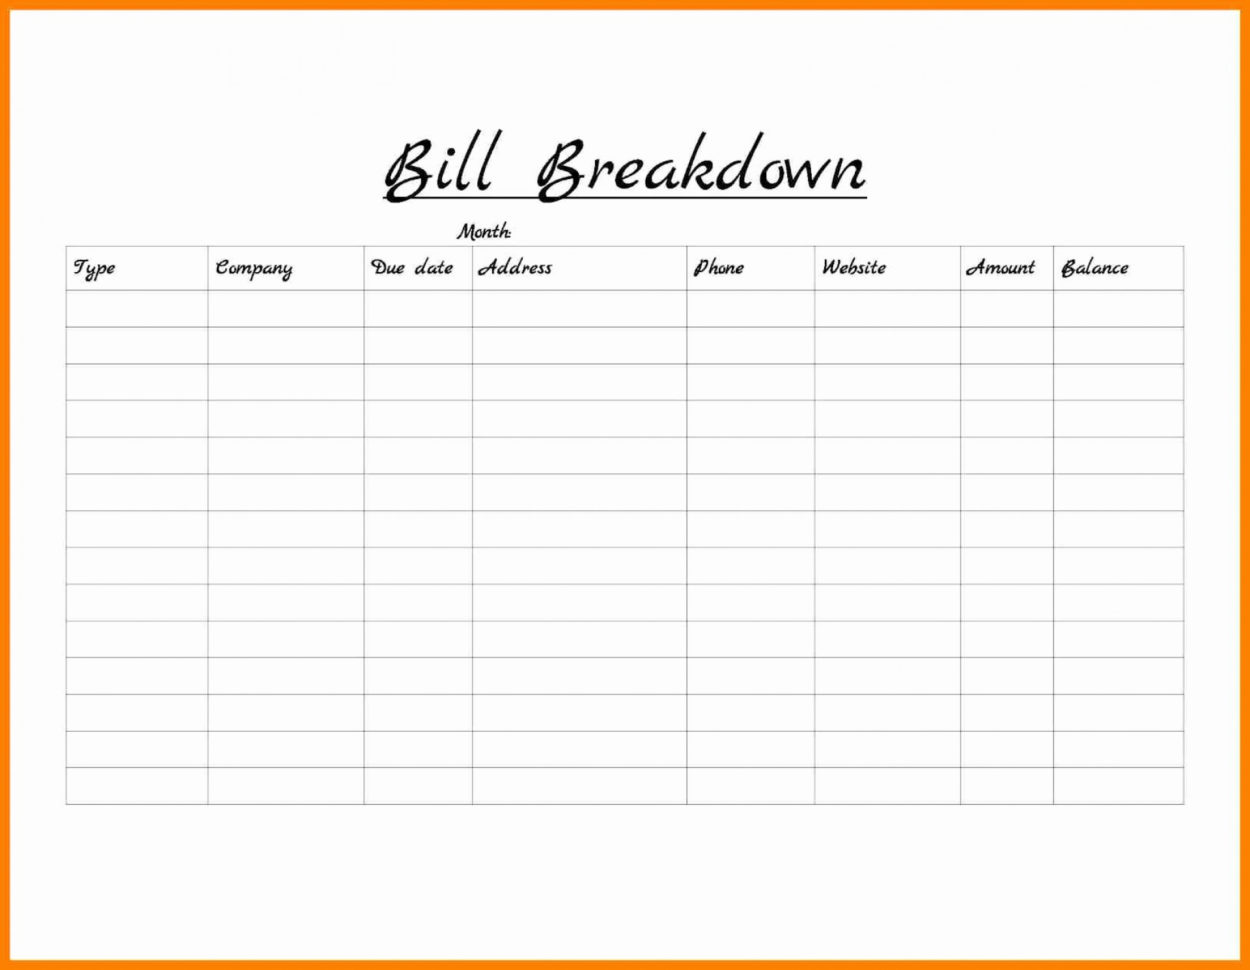 Free Monthly Bill Organizer Spreadsheet Within 009 Bill Organizeremplate Excel With Payment Printable Plusogether